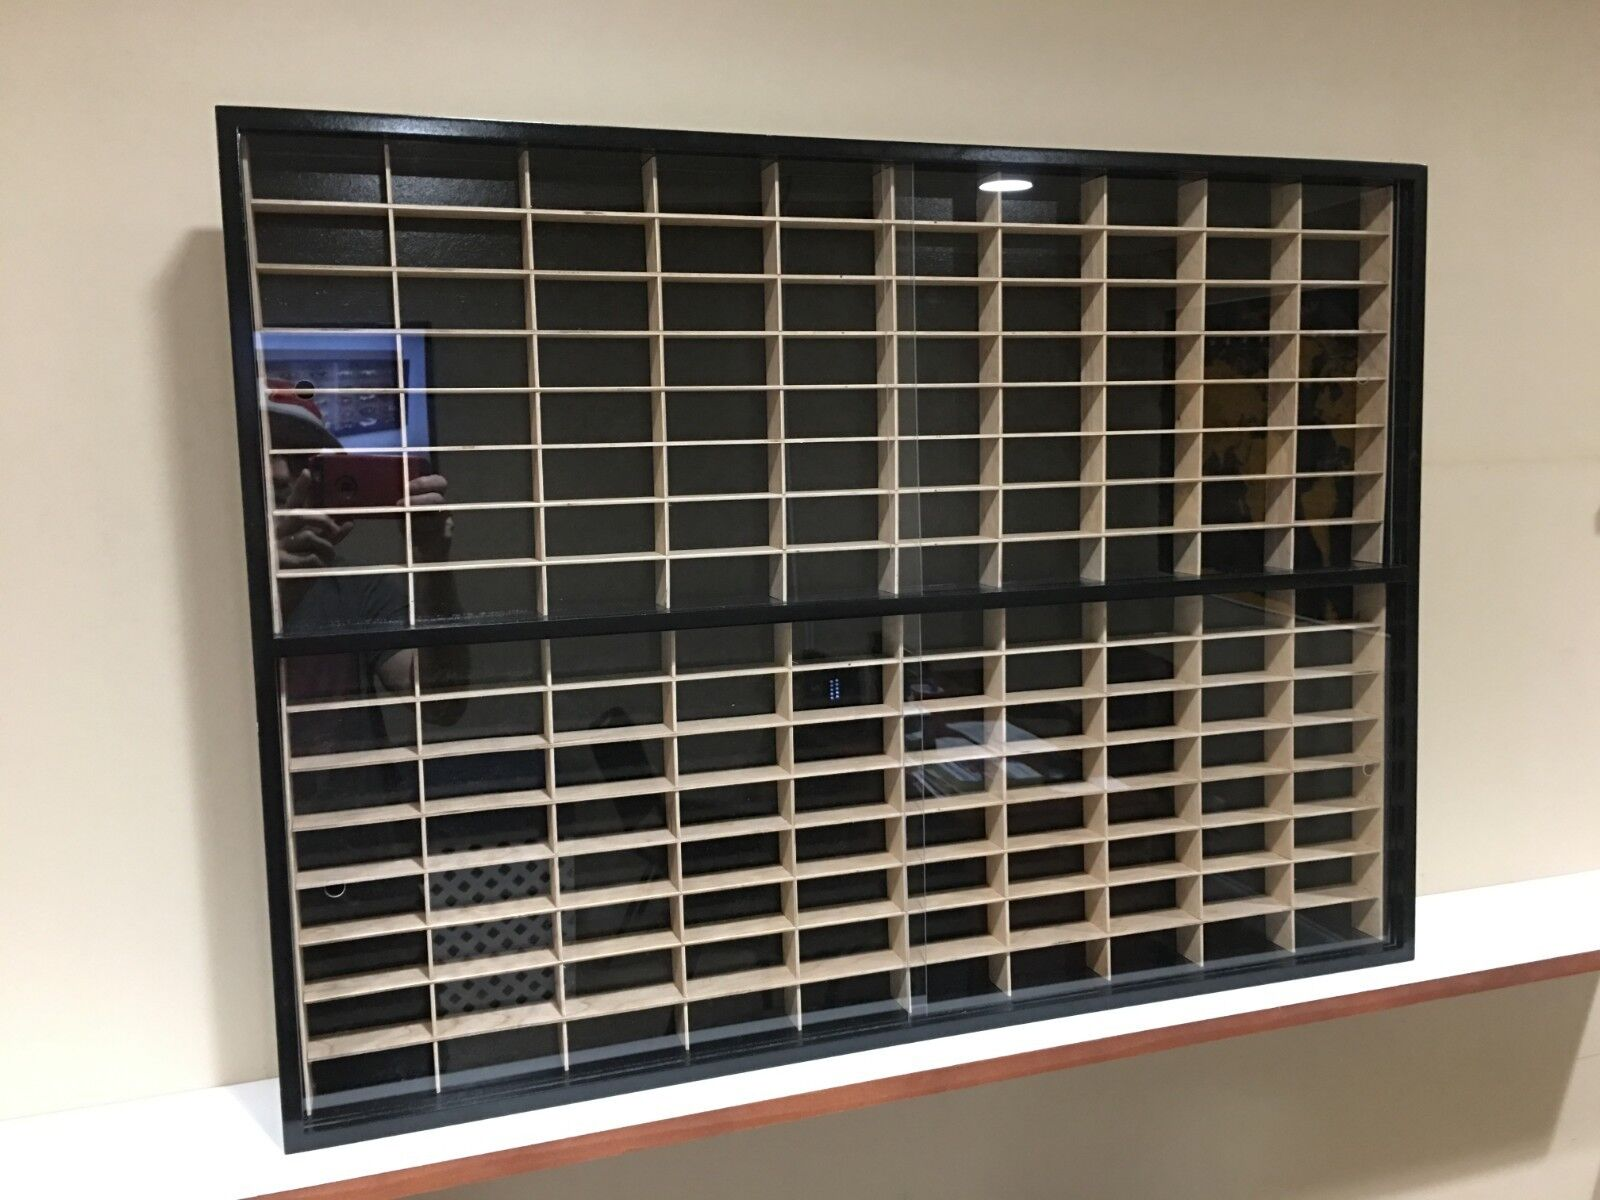 Display case cabinet for 1 64 diecast scale cars (hot wheels, matchbox) 160NBW-1